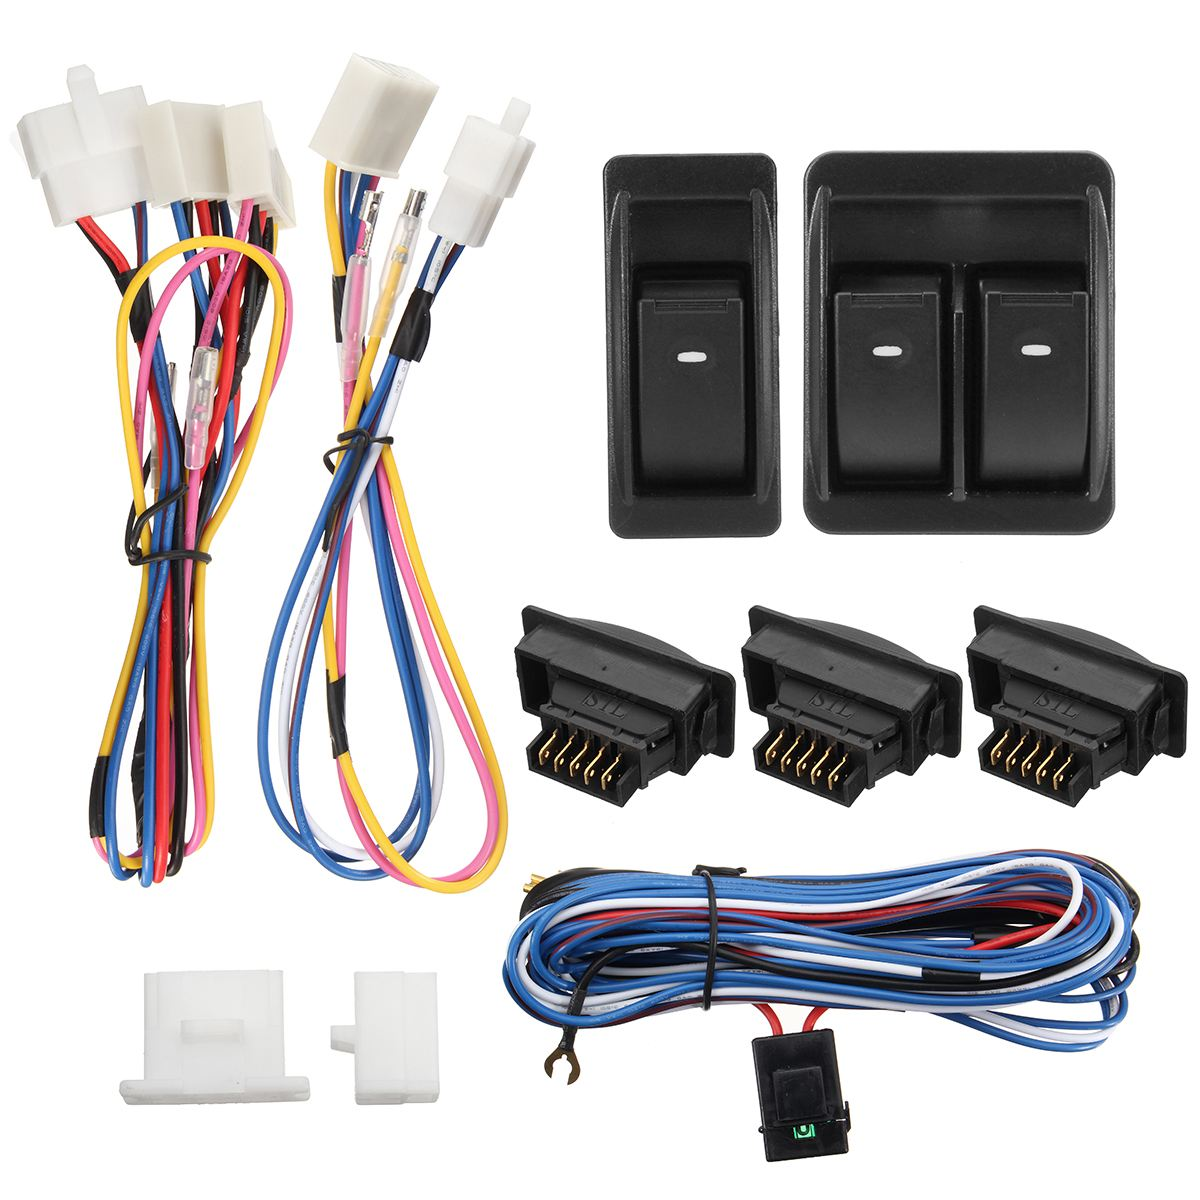 1 Set 12V Car SUV Off-Road Power Door Window Glass Lift LED Switch & Wiring Harness 2016 mini clubman one coopers side door power window switch center console panel covers accessories car stickers for f54 6 door